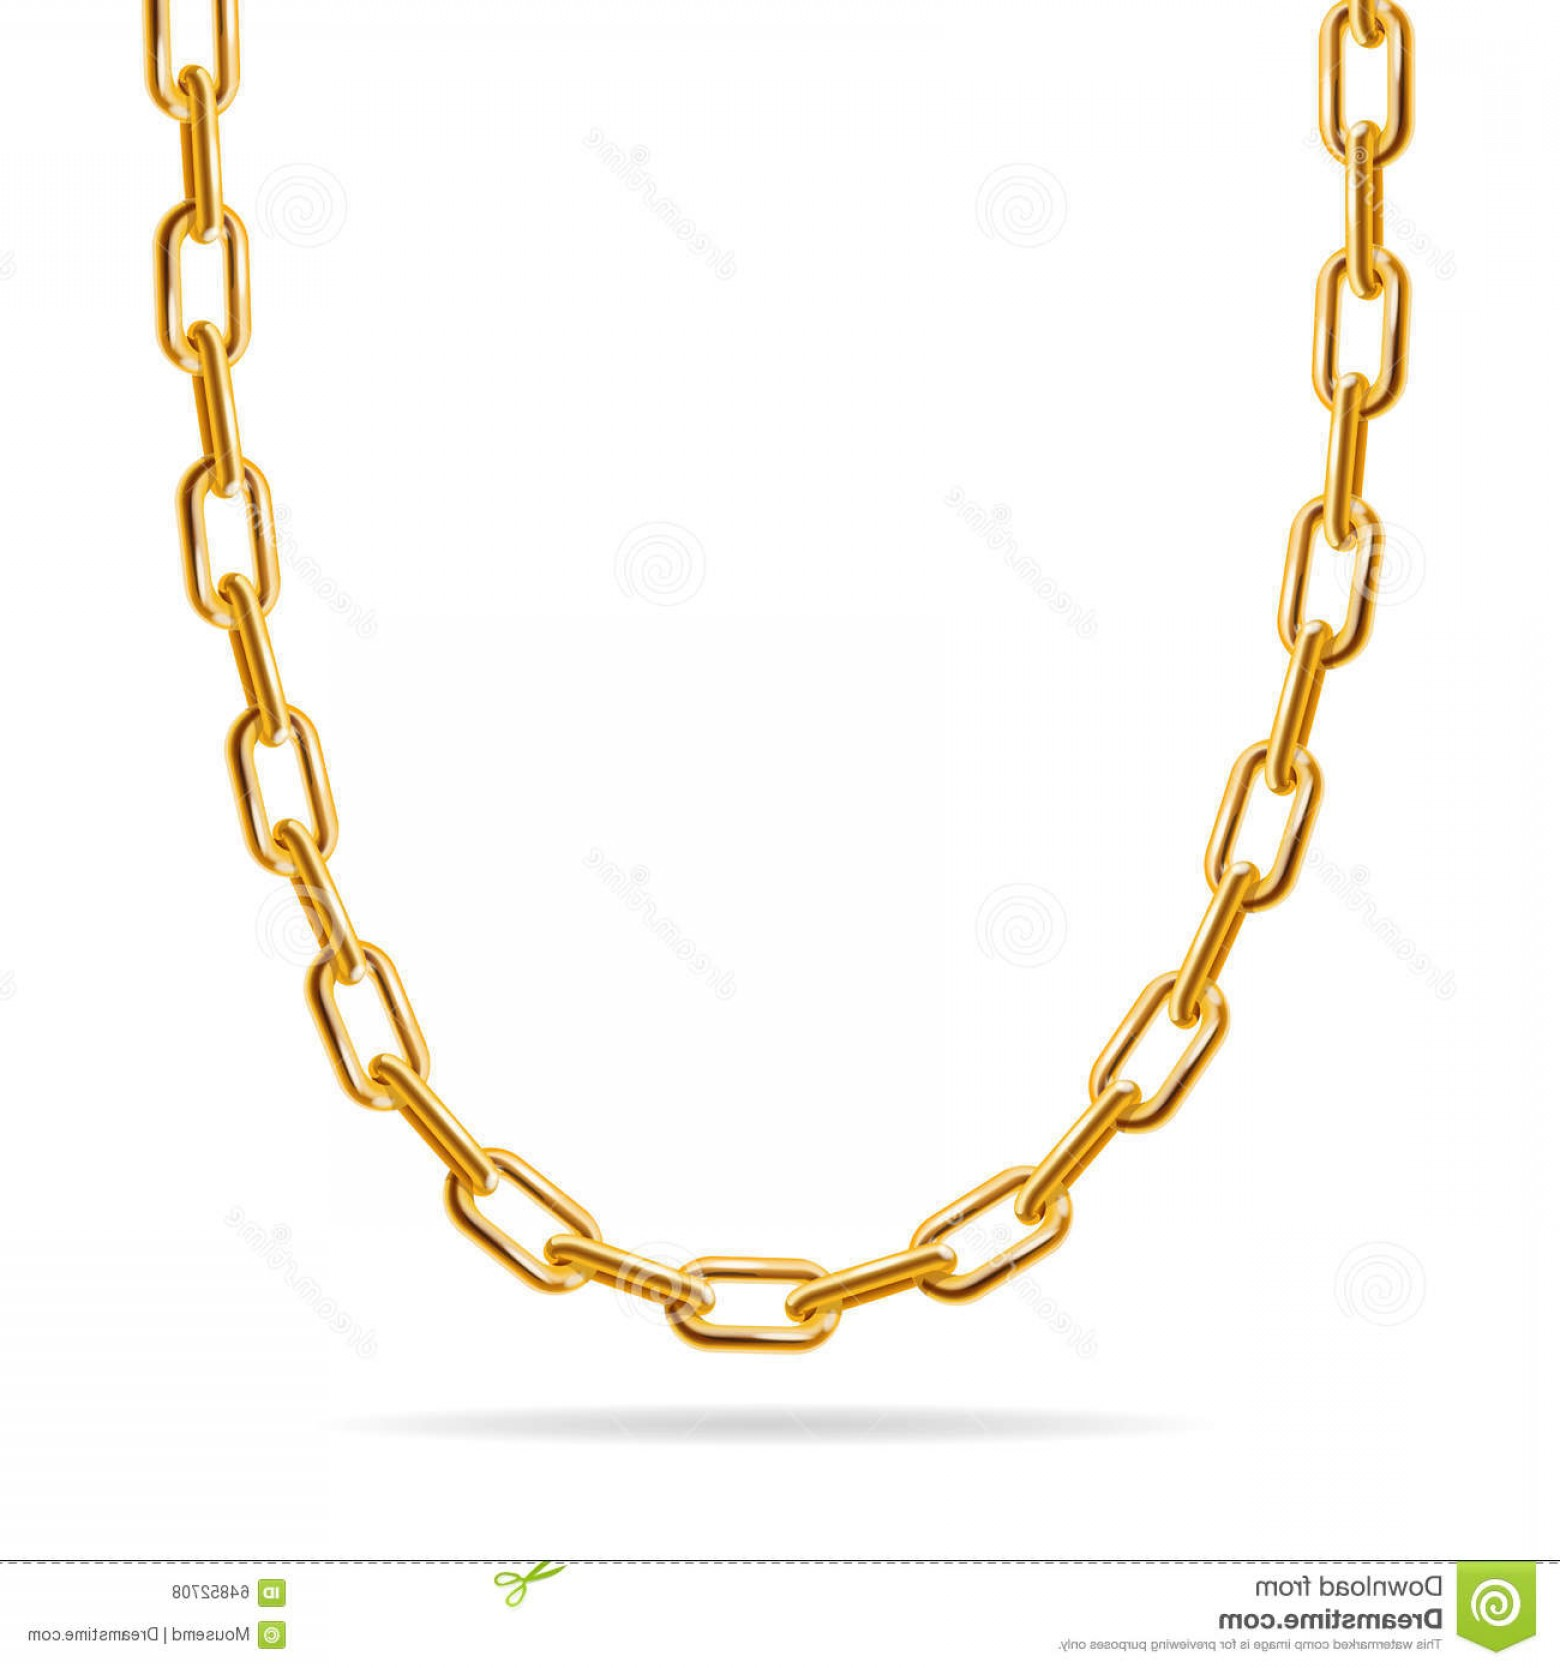 Necklace Vector Chain Grapicts: Stock Illustration Gold Chain Jewelry Vector Fashion Design Illustration Image